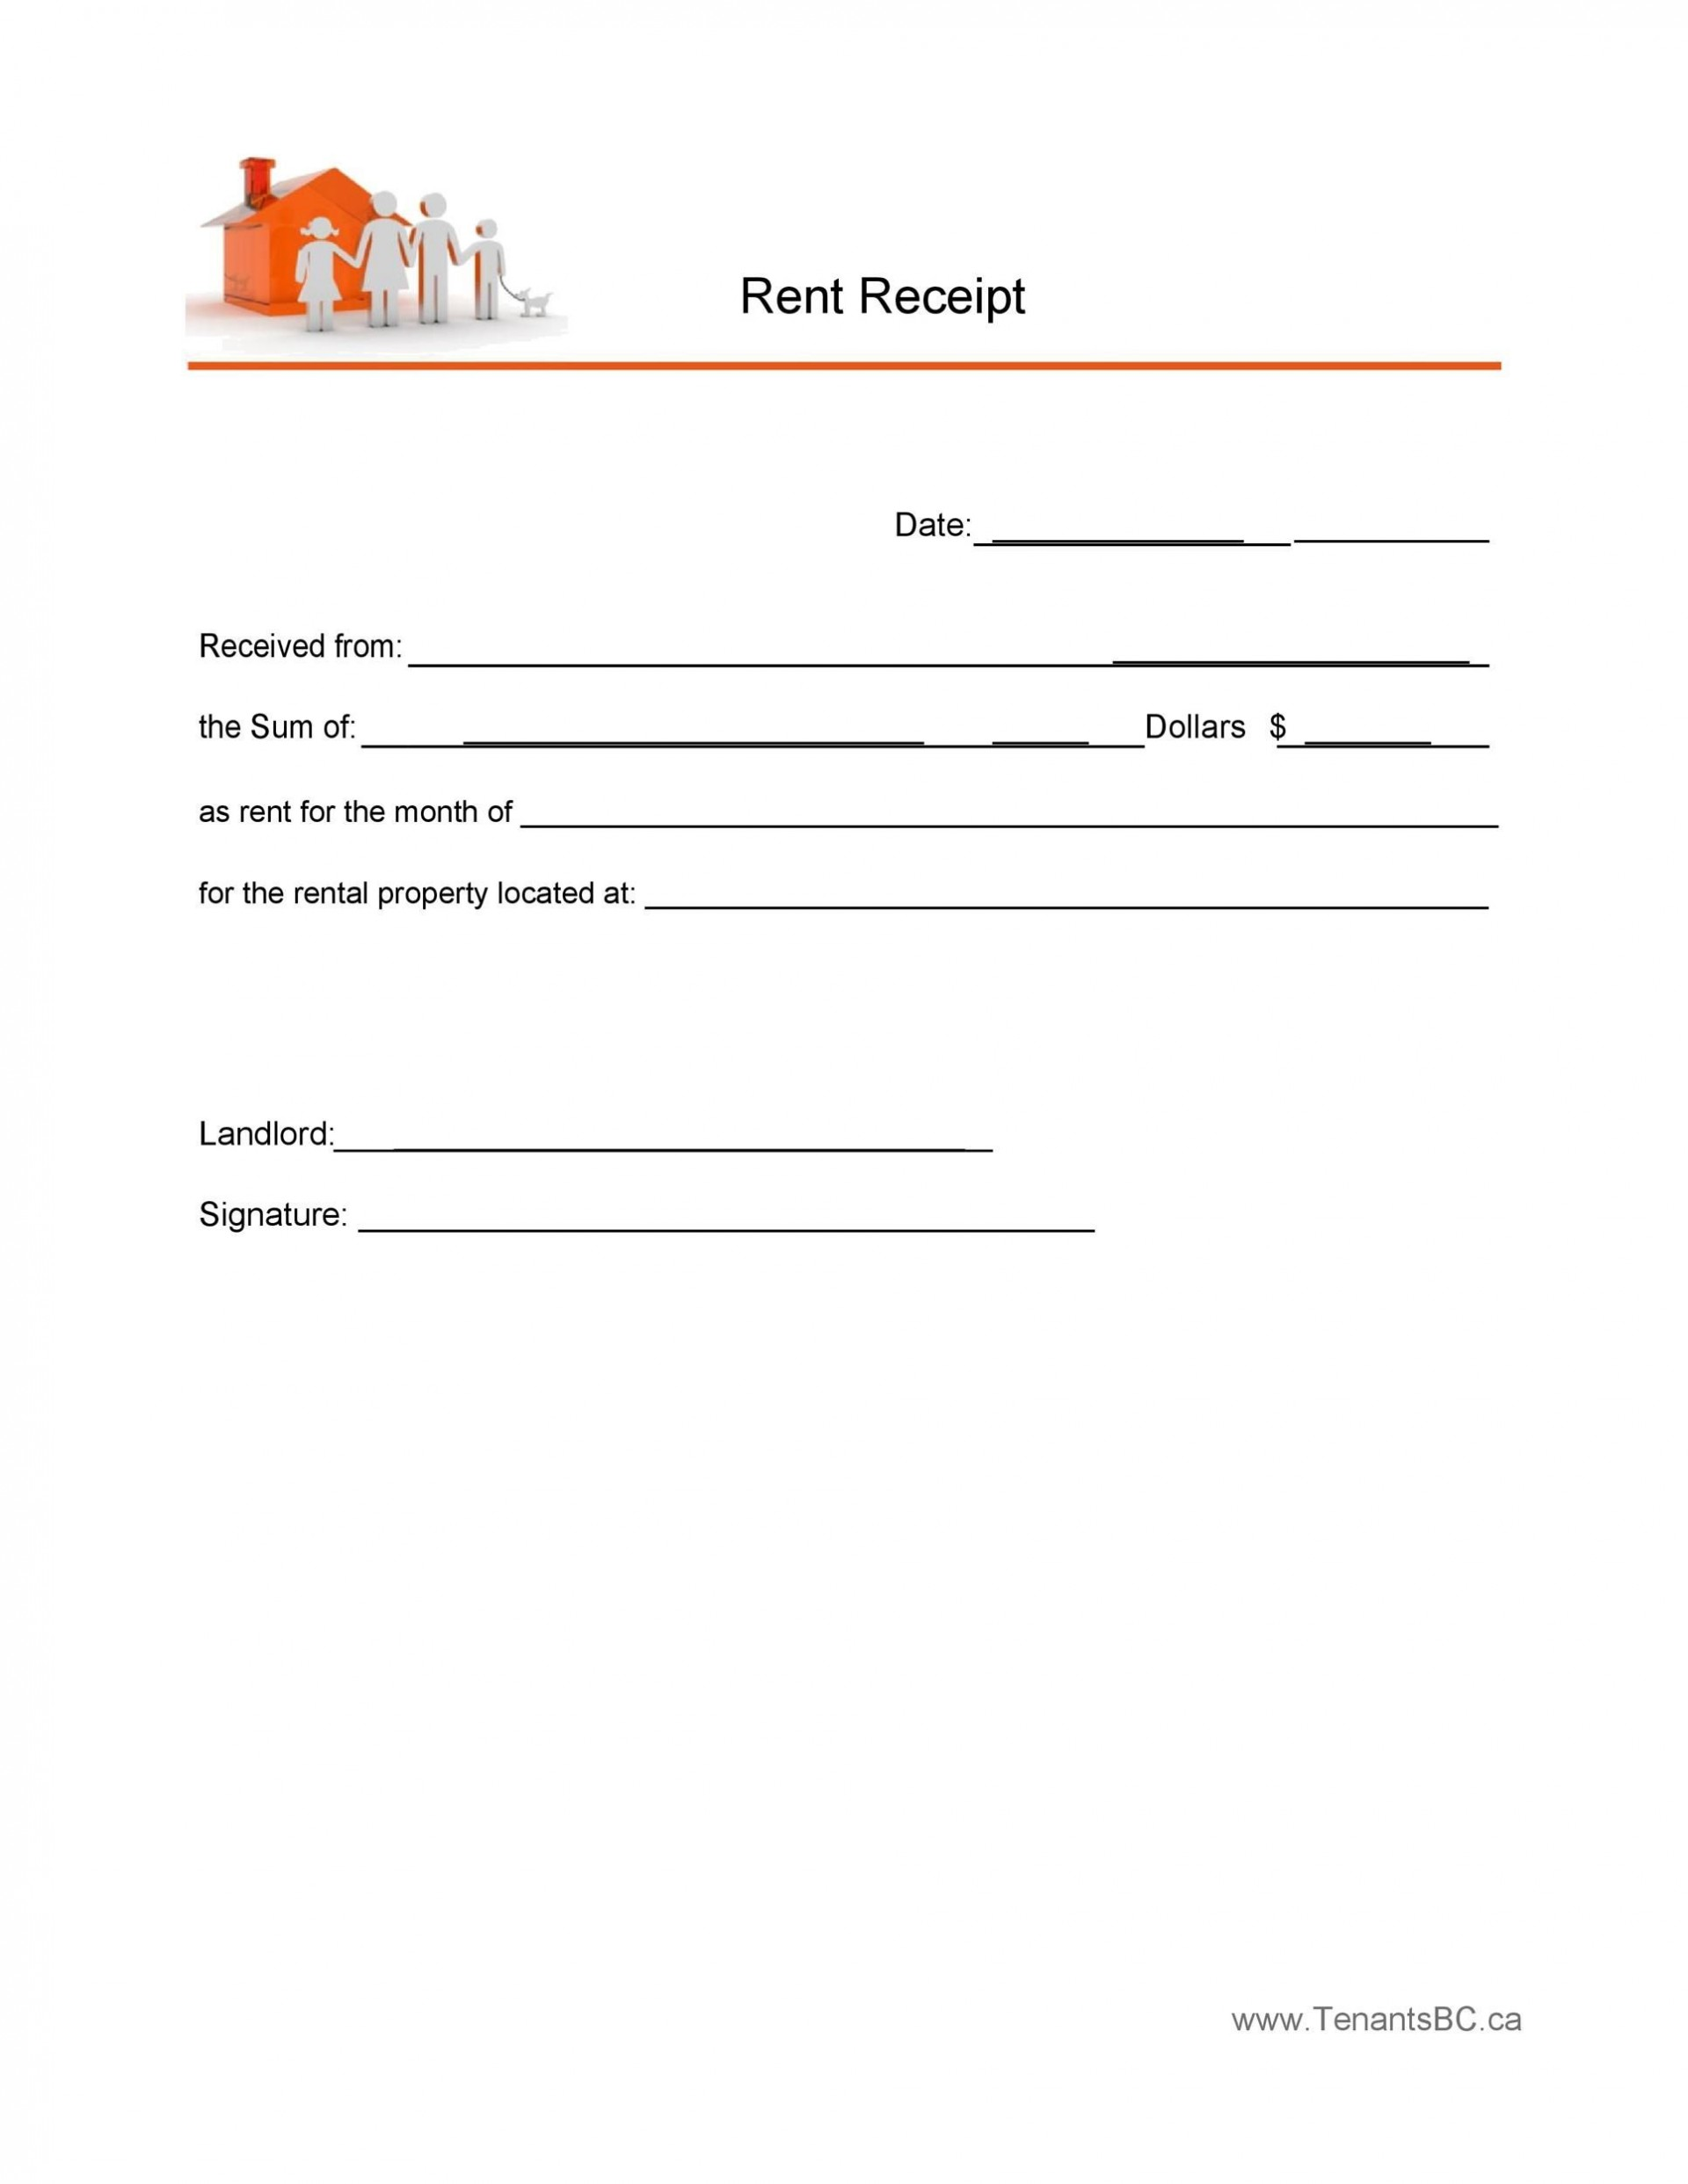 008 Surprising House Rent Receipt Sample Doc Highest Clarity  Format Download Bill Template India1920